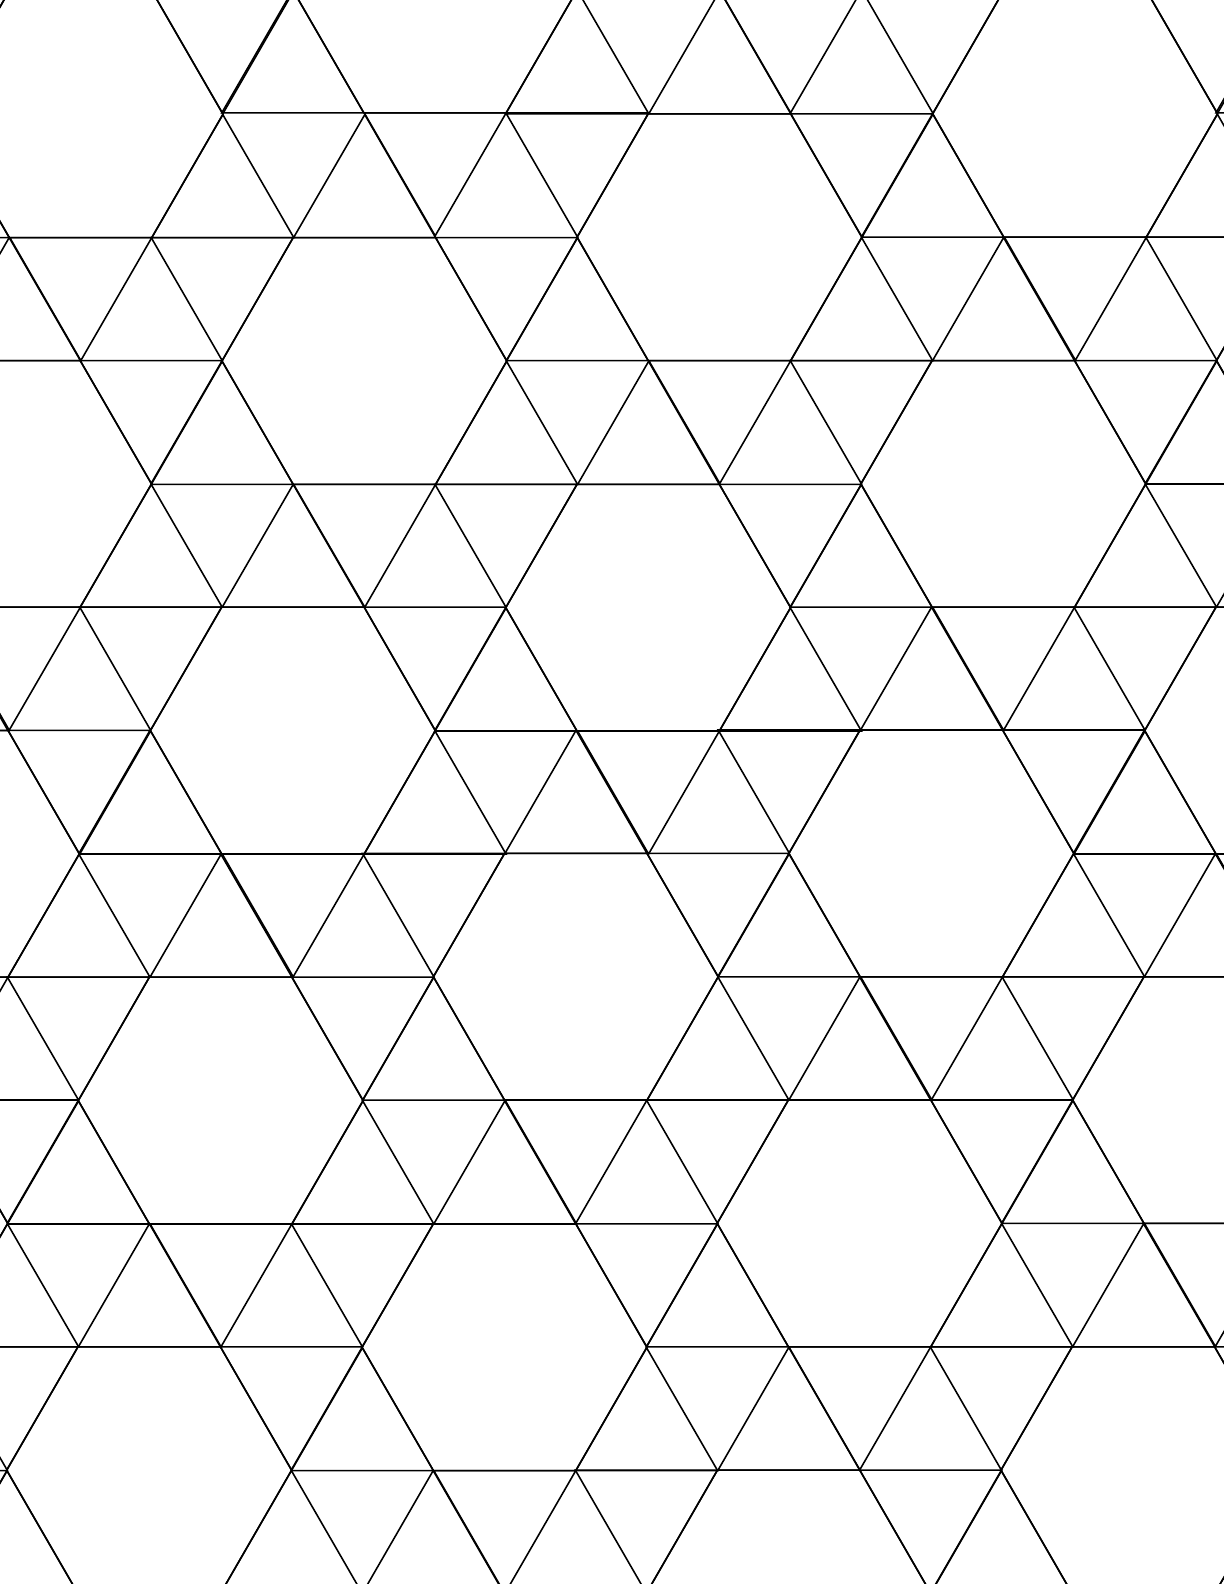 Tessellation Graph Paper (3.3.3.3.6) Free Download